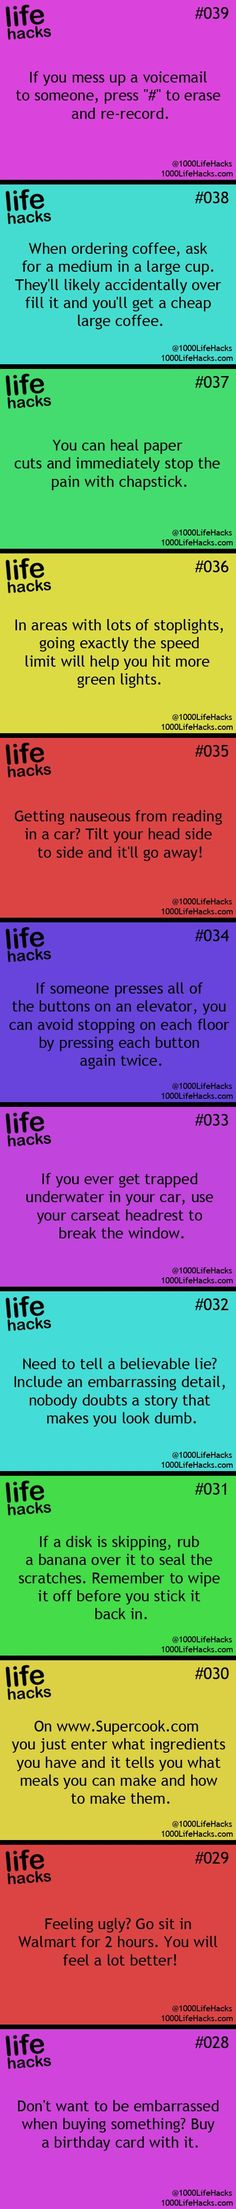 Funny pictures about 25 Useful Life Hacks. Oh, and cool pics about 25 Useful Life Hacks. Also, 25 Useful Life Hacks. Useful Life Hacks, Simple Life Hacks, Funny Life Hacks, The More You Know, Just For You, 1000 Lifehacks, Best Hacks, Things To Know, Good Things